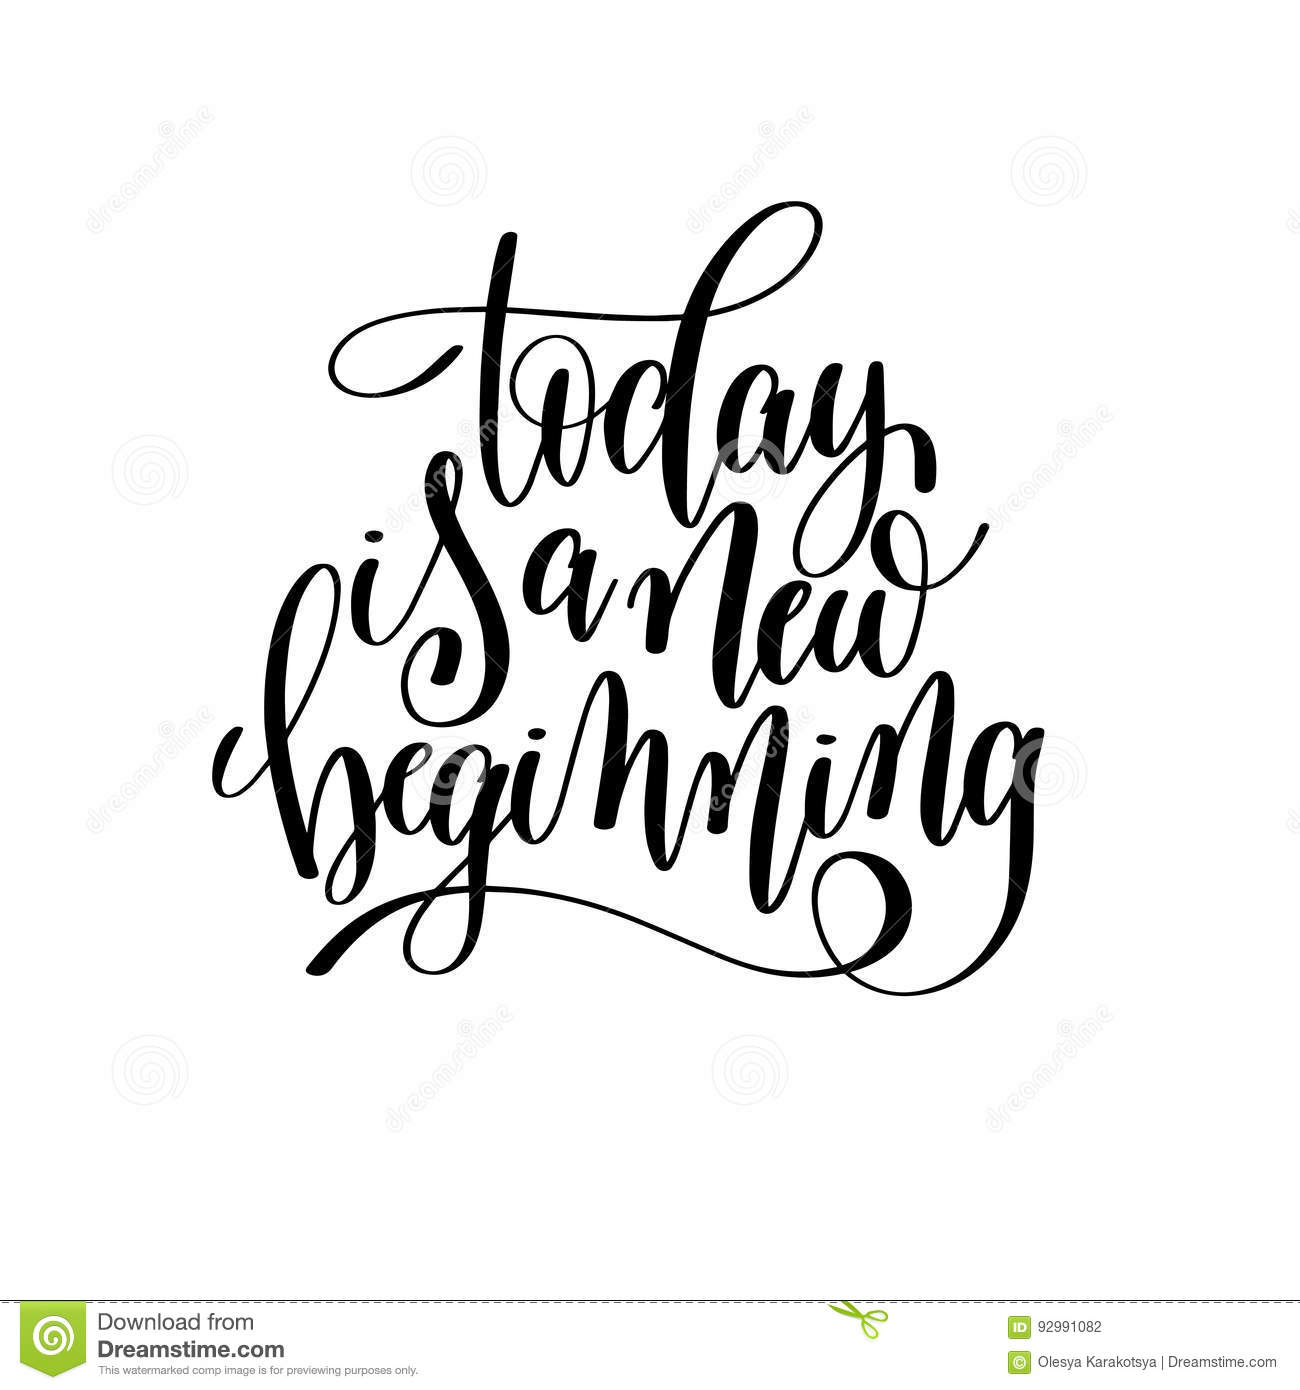 Inspiring Clipart New Beginning: Today Is A New Beginning Black And White Hand Written